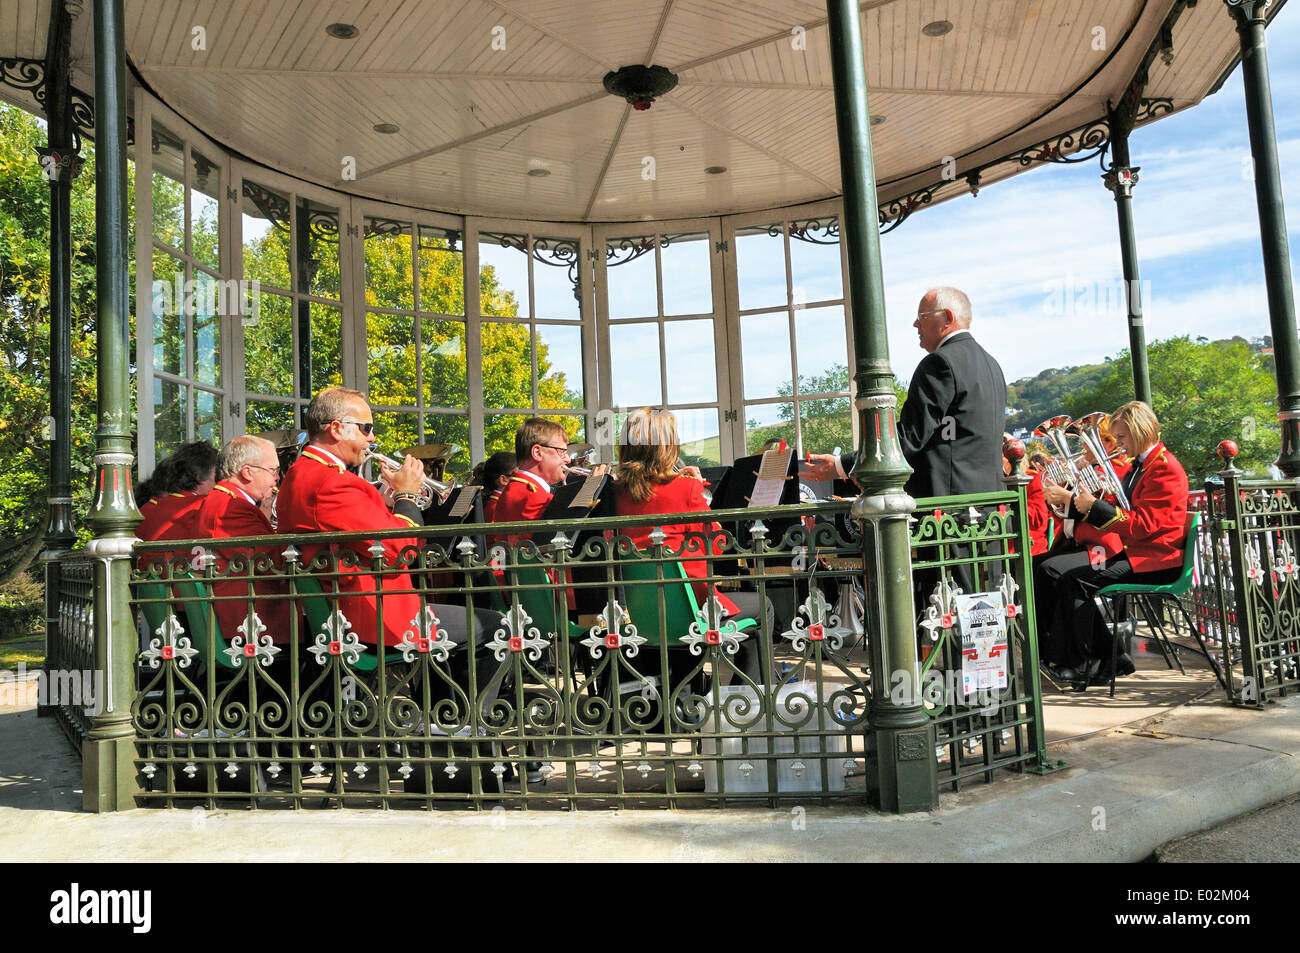 Brass band performing in bandstand, Dartmouth, Devon, UK - Stock Image